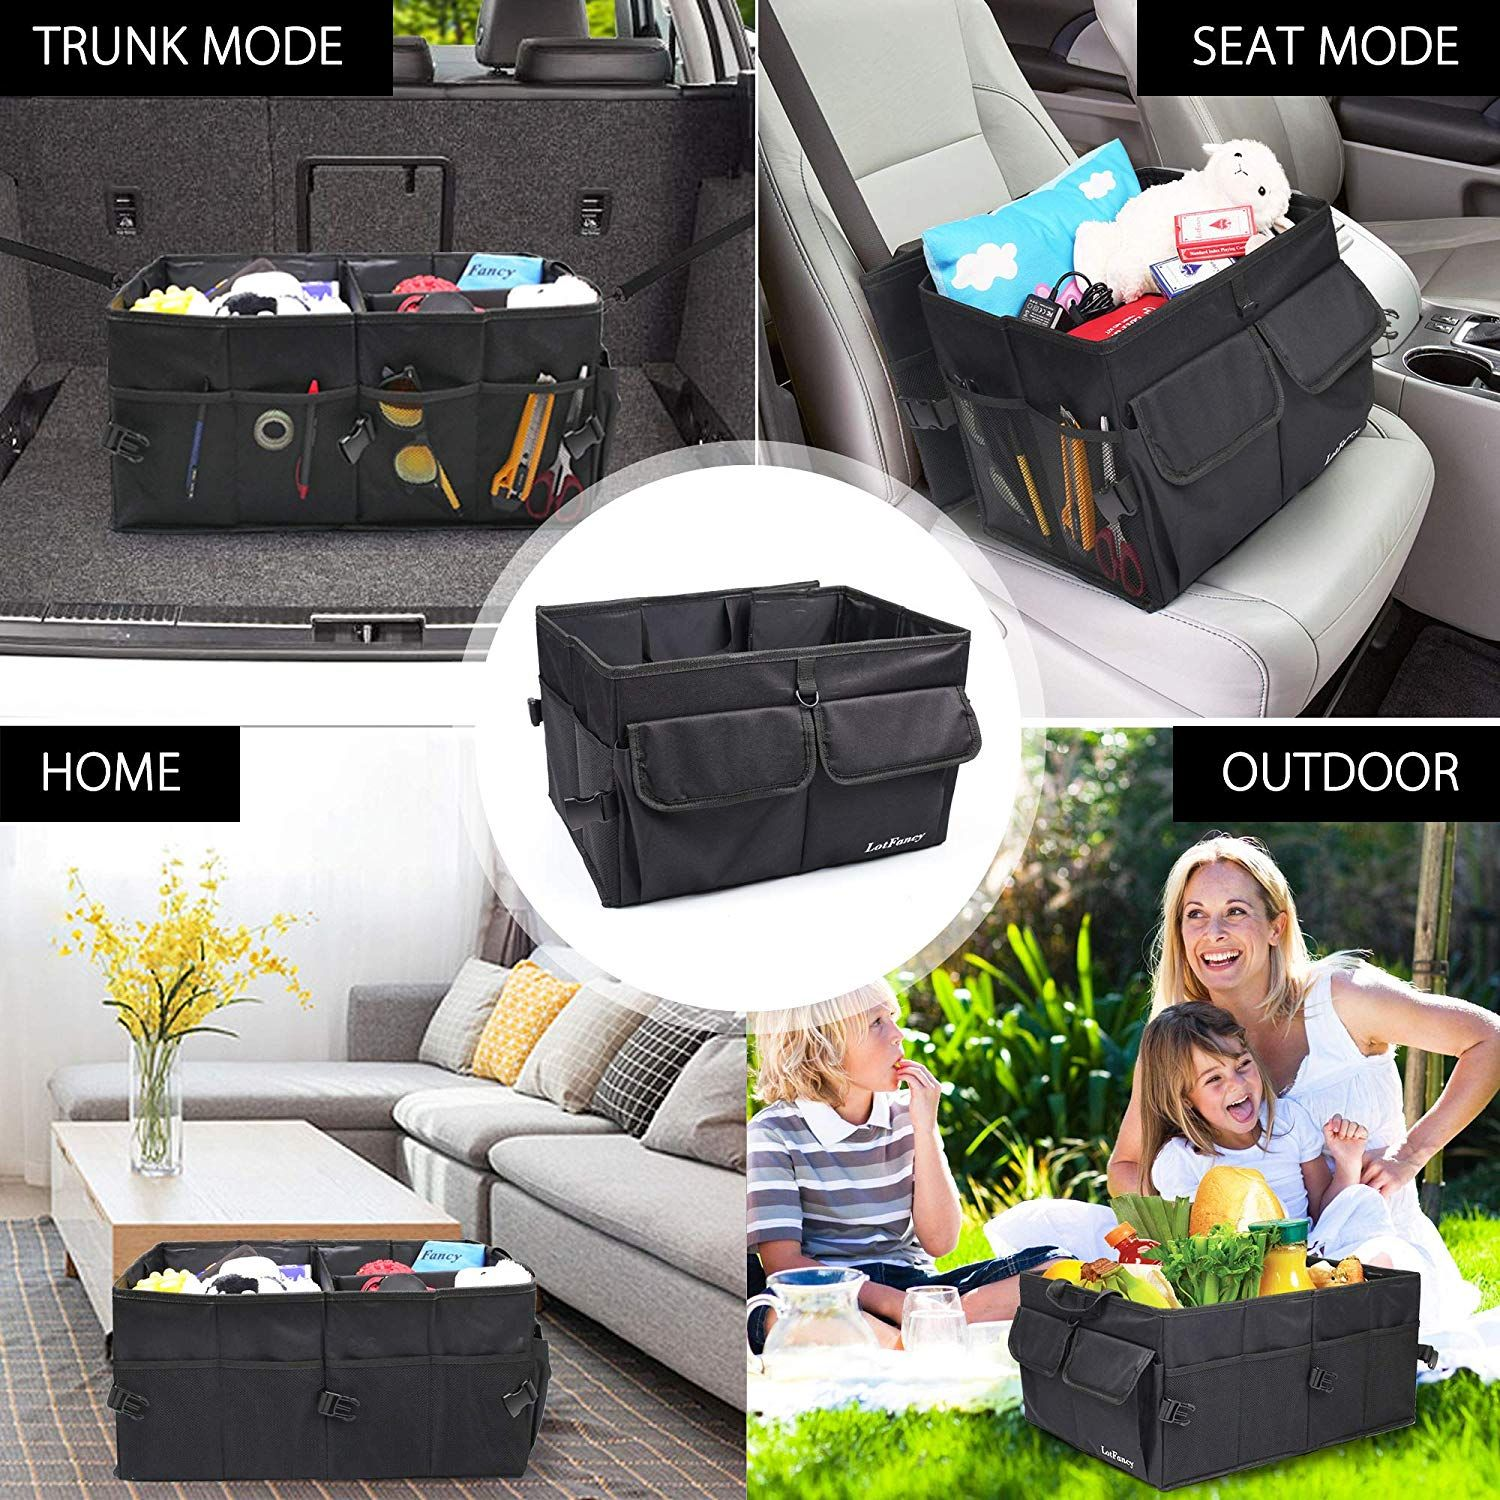 Every family needs a car trunk for going out check out